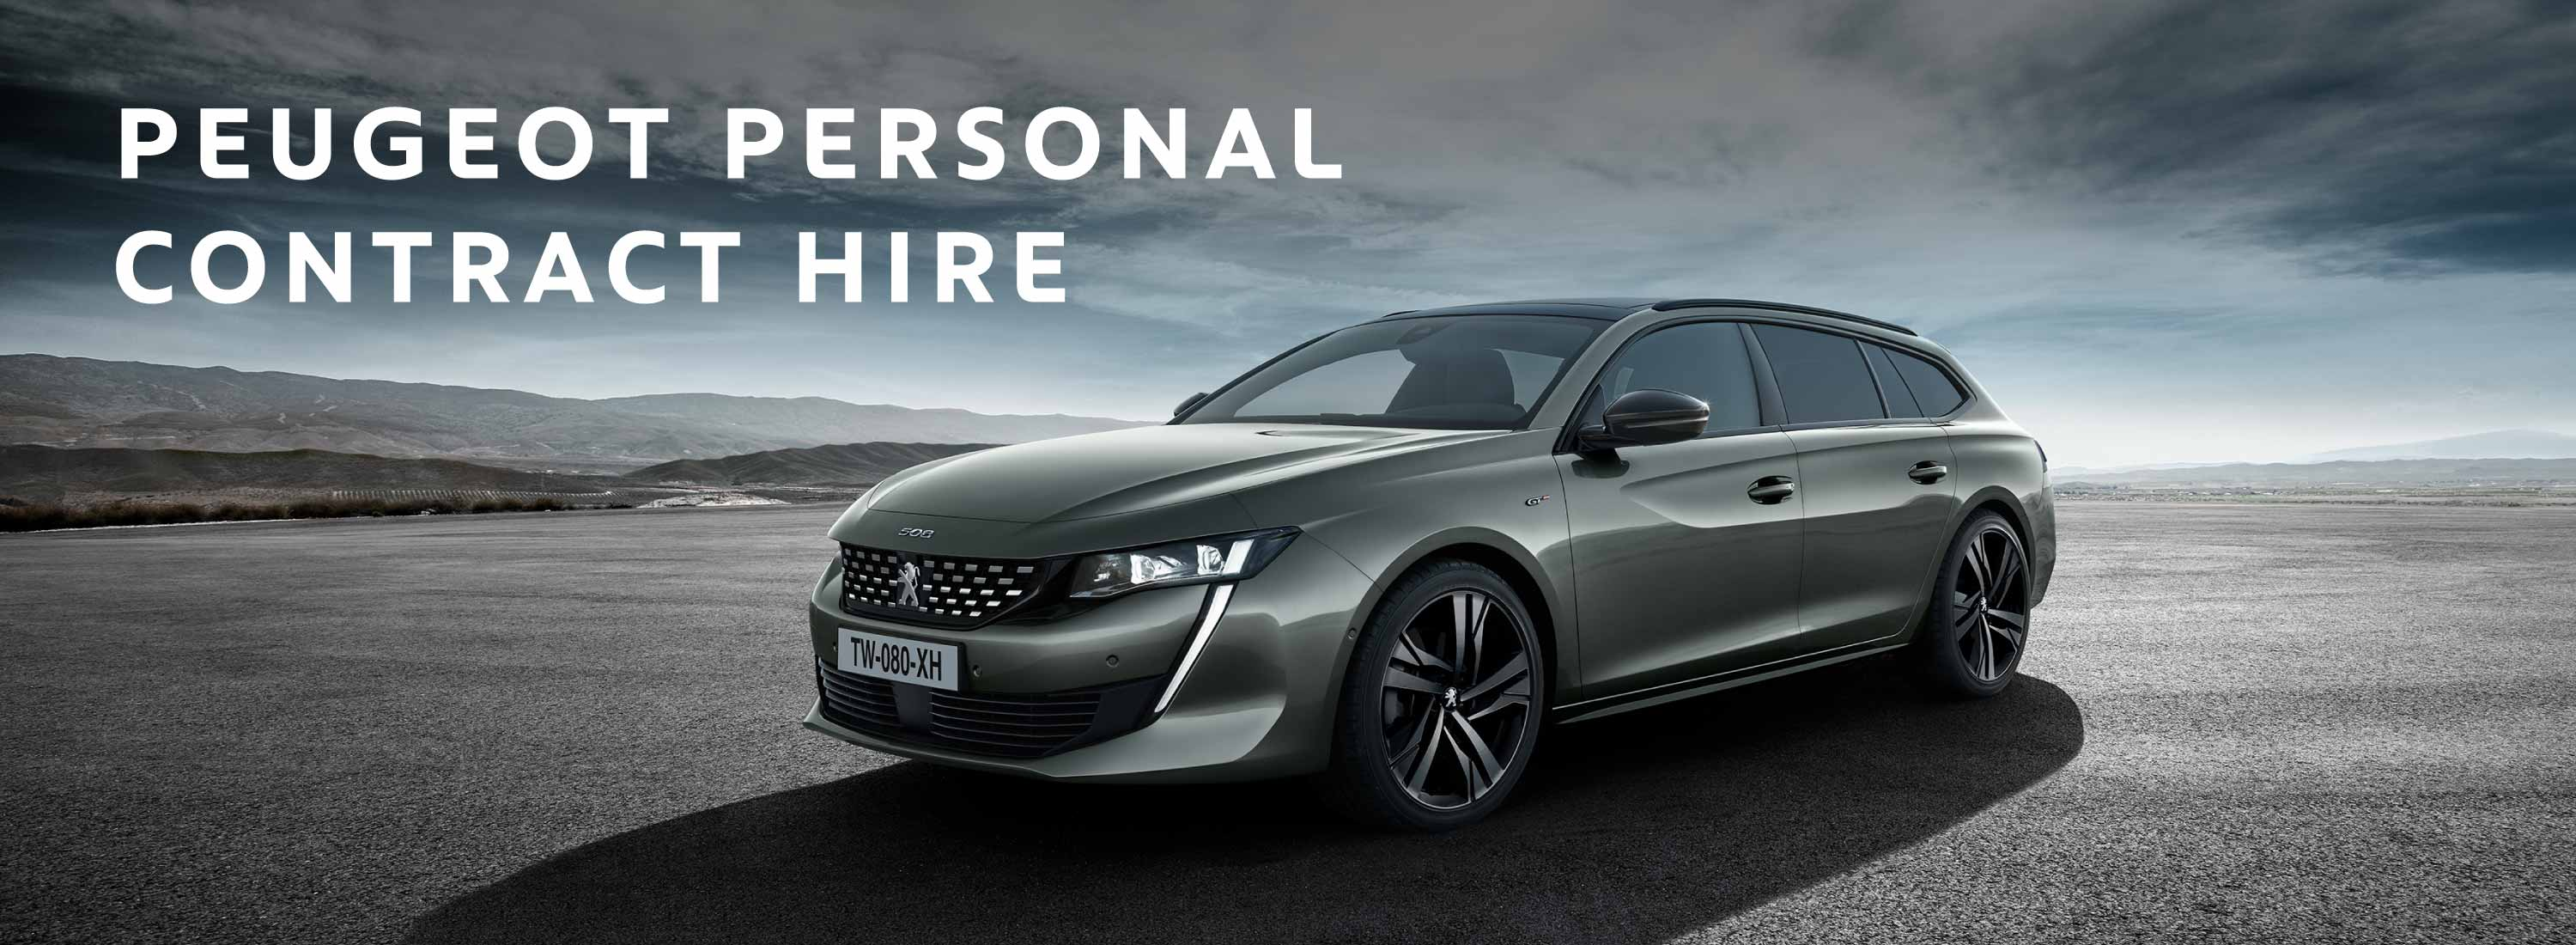 Peugeot Personal Contract Hire